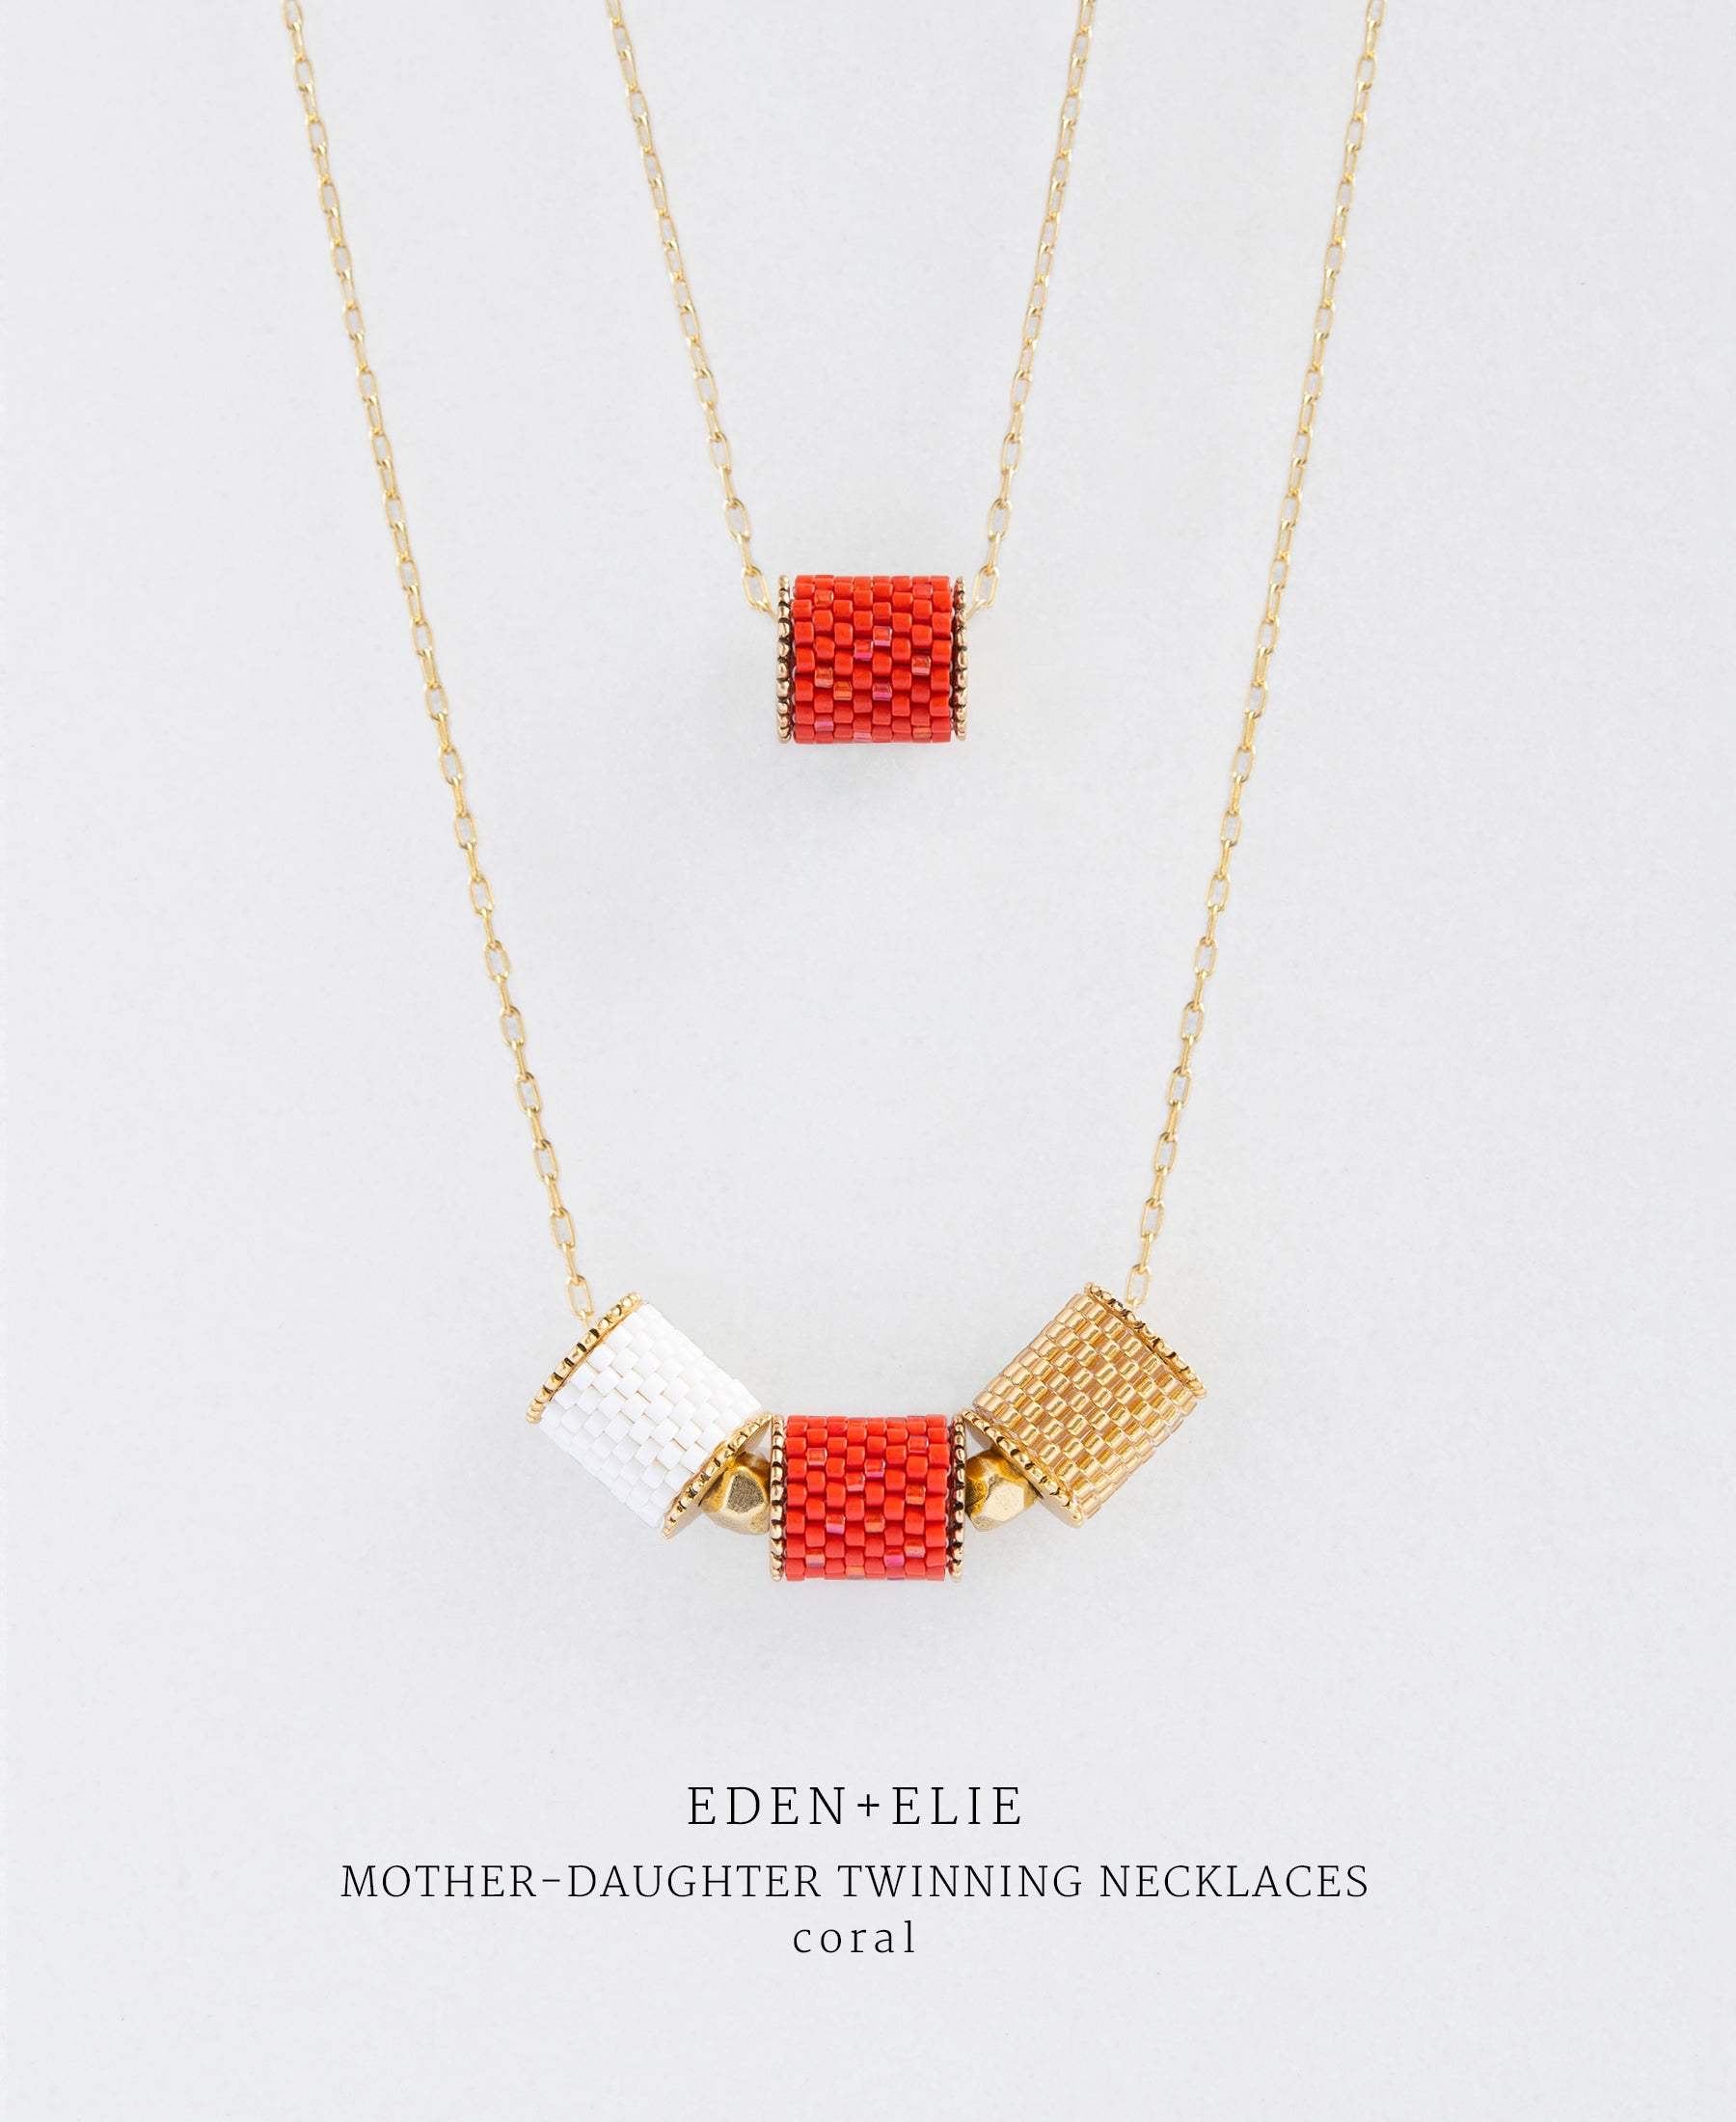 EDEN + ELIE Mother-Daughter twinning necklaces set - coral red